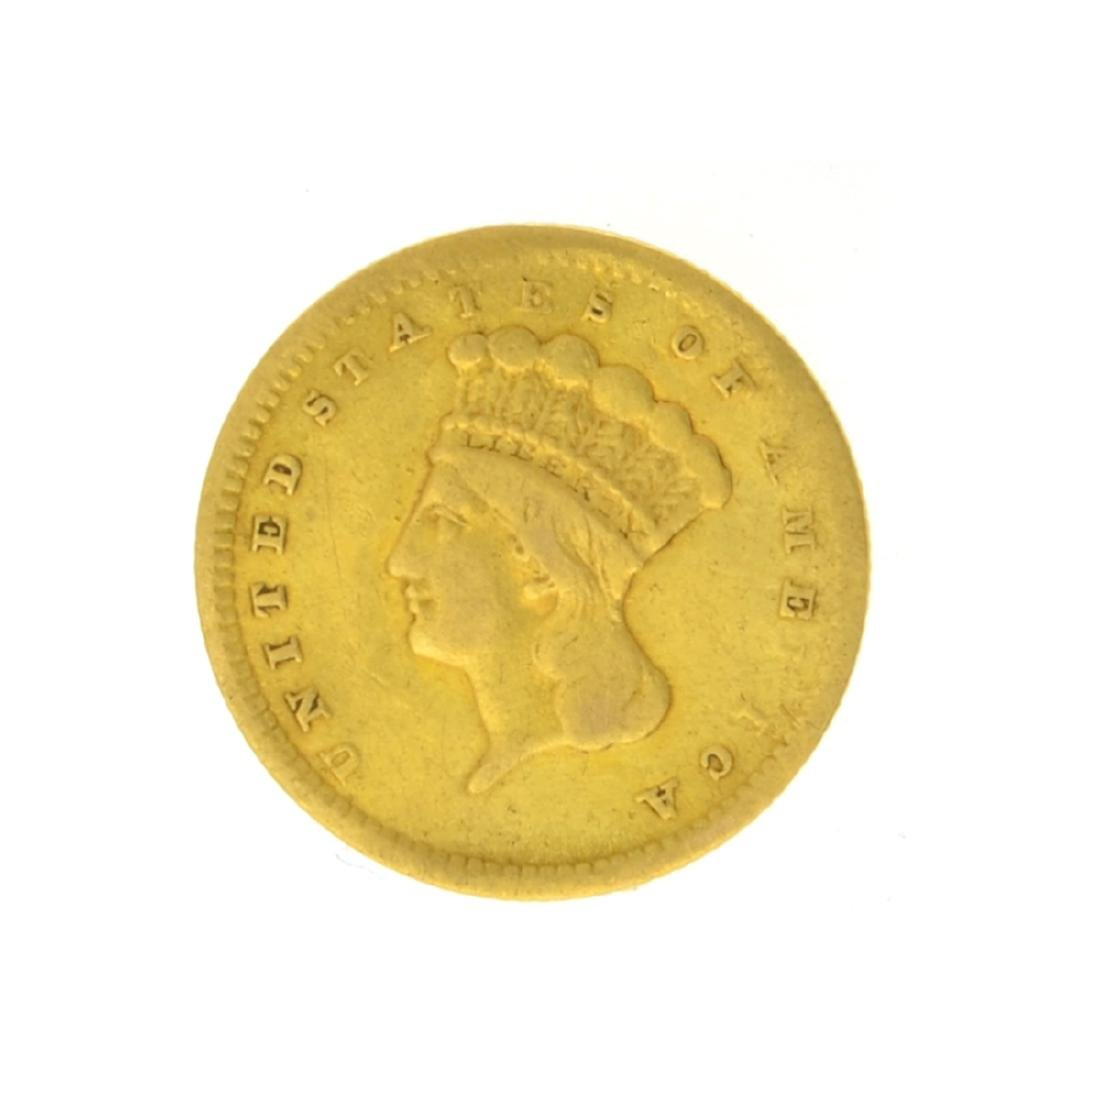 1856 $1 Large Indian Head Gold Coin